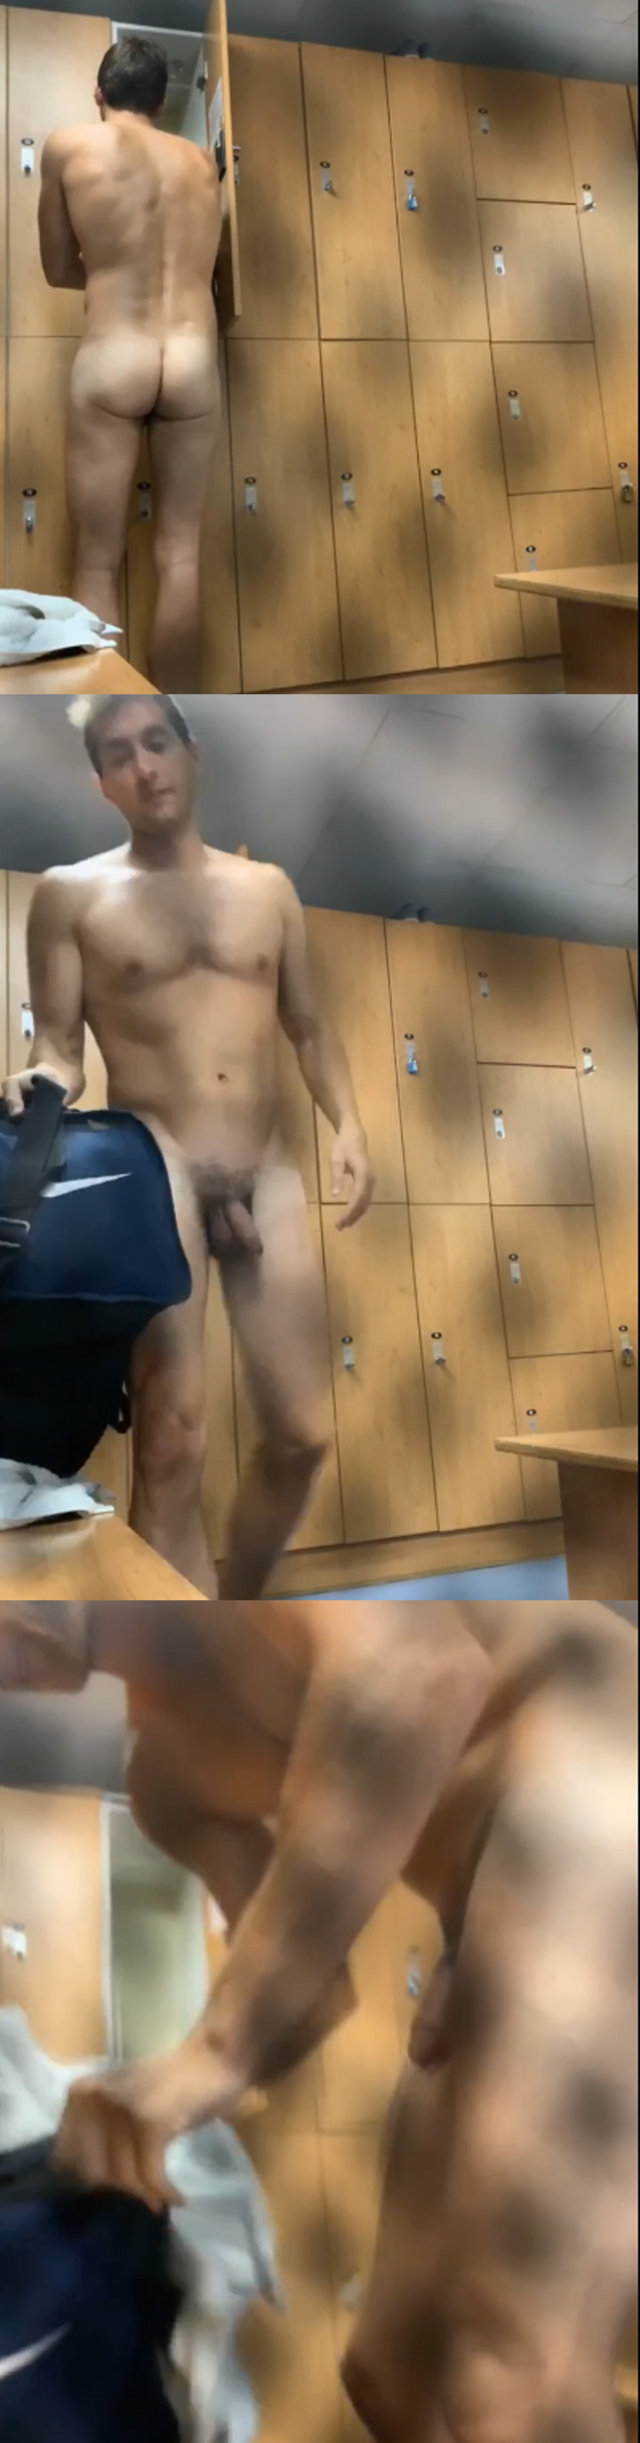 tall guy with thick uncut cock caught naked in lockerroom